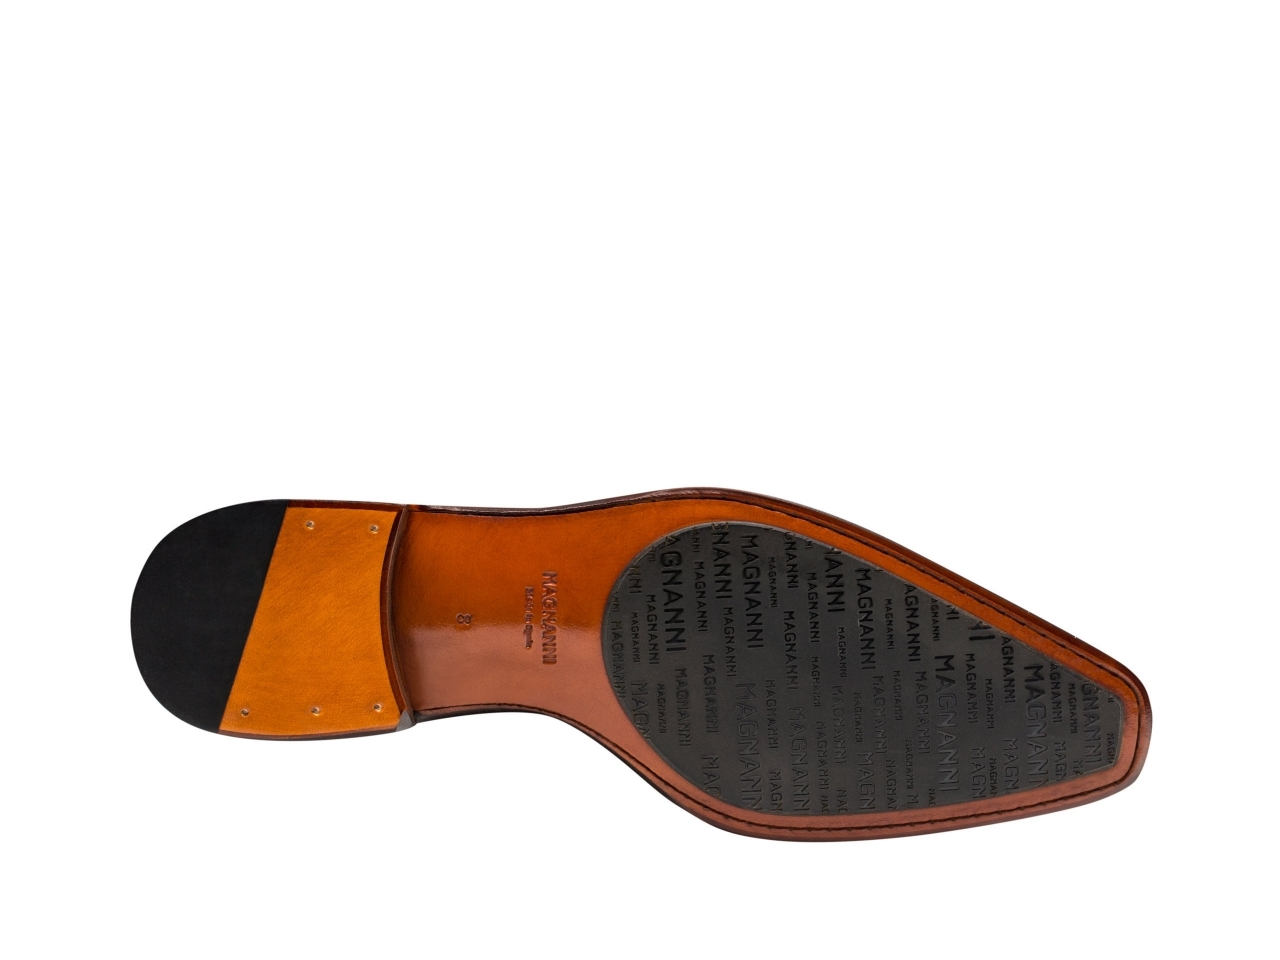 The sole of the Algarra